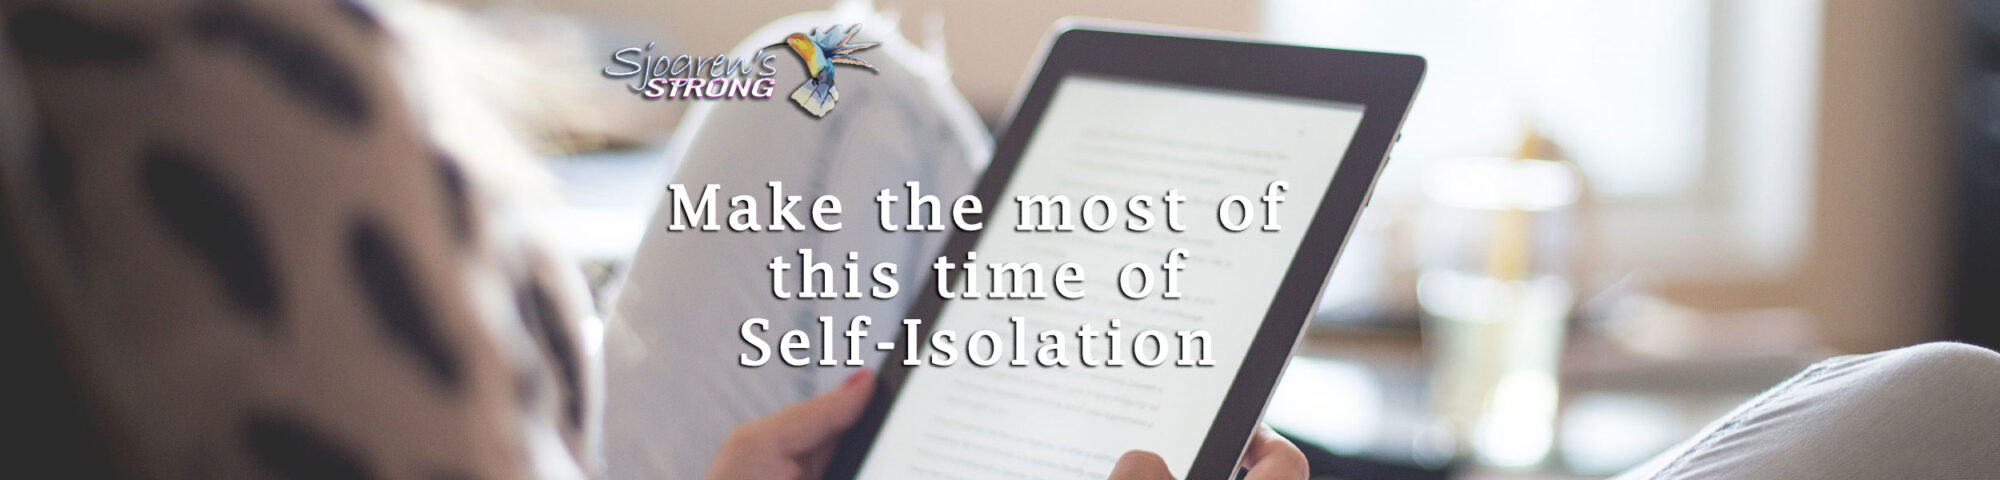 Make the most of this time of Self-Isolation